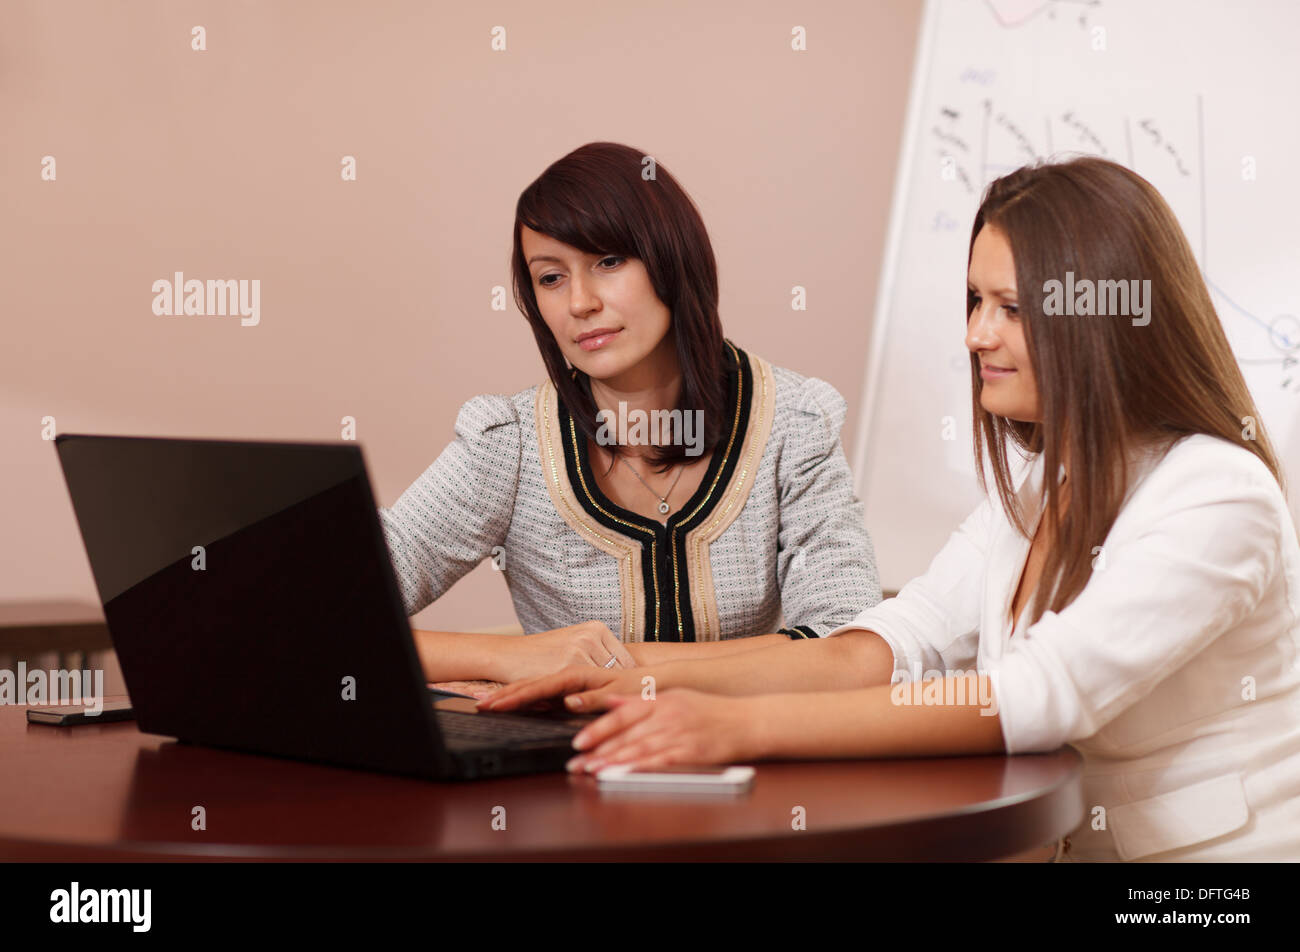 Two women sitting at a table with a laptop - Stock Image